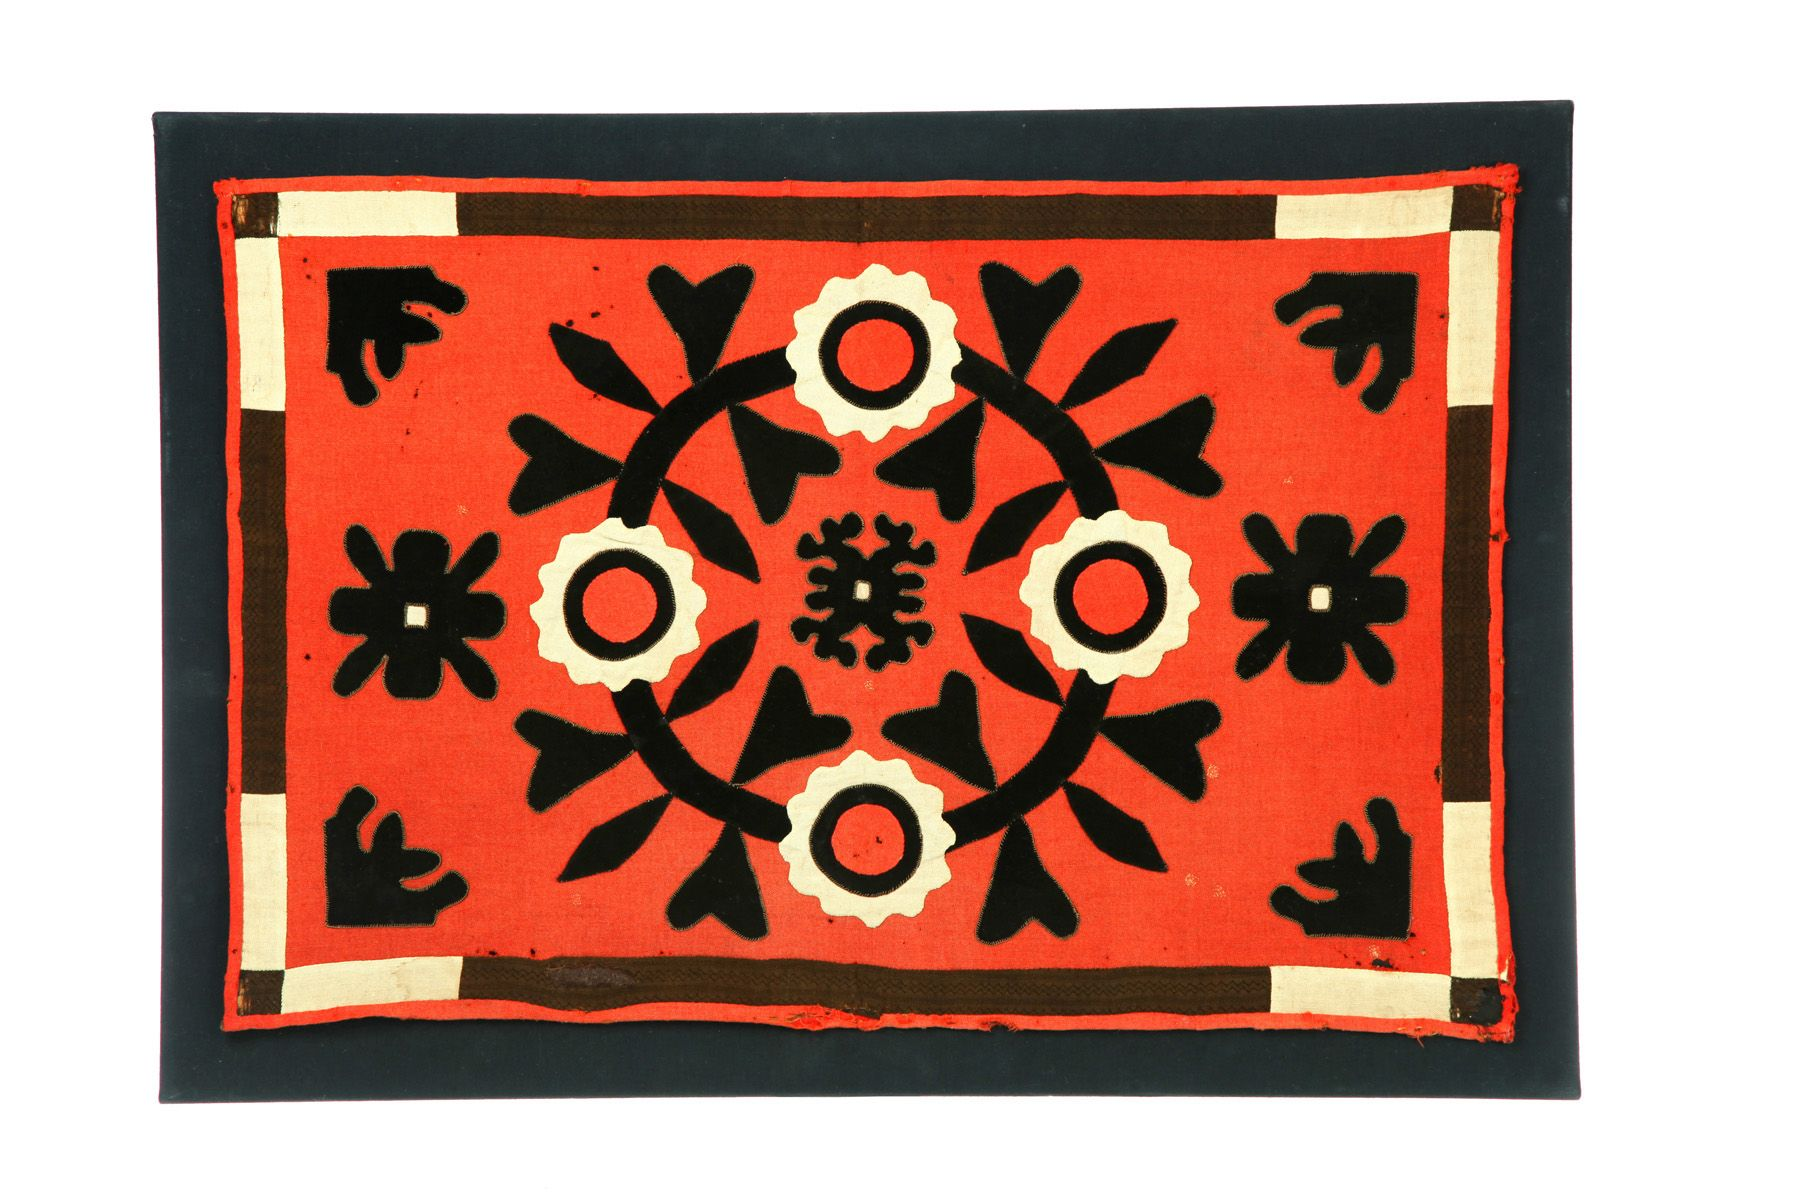 "Table rug, American, mid 19th century, wool and cotton. Appliqued wreath and two-color border, cotton print backing. 21.5"" h. 32.5""w Found in Massachusetts.Sale 1111, Lot 33"